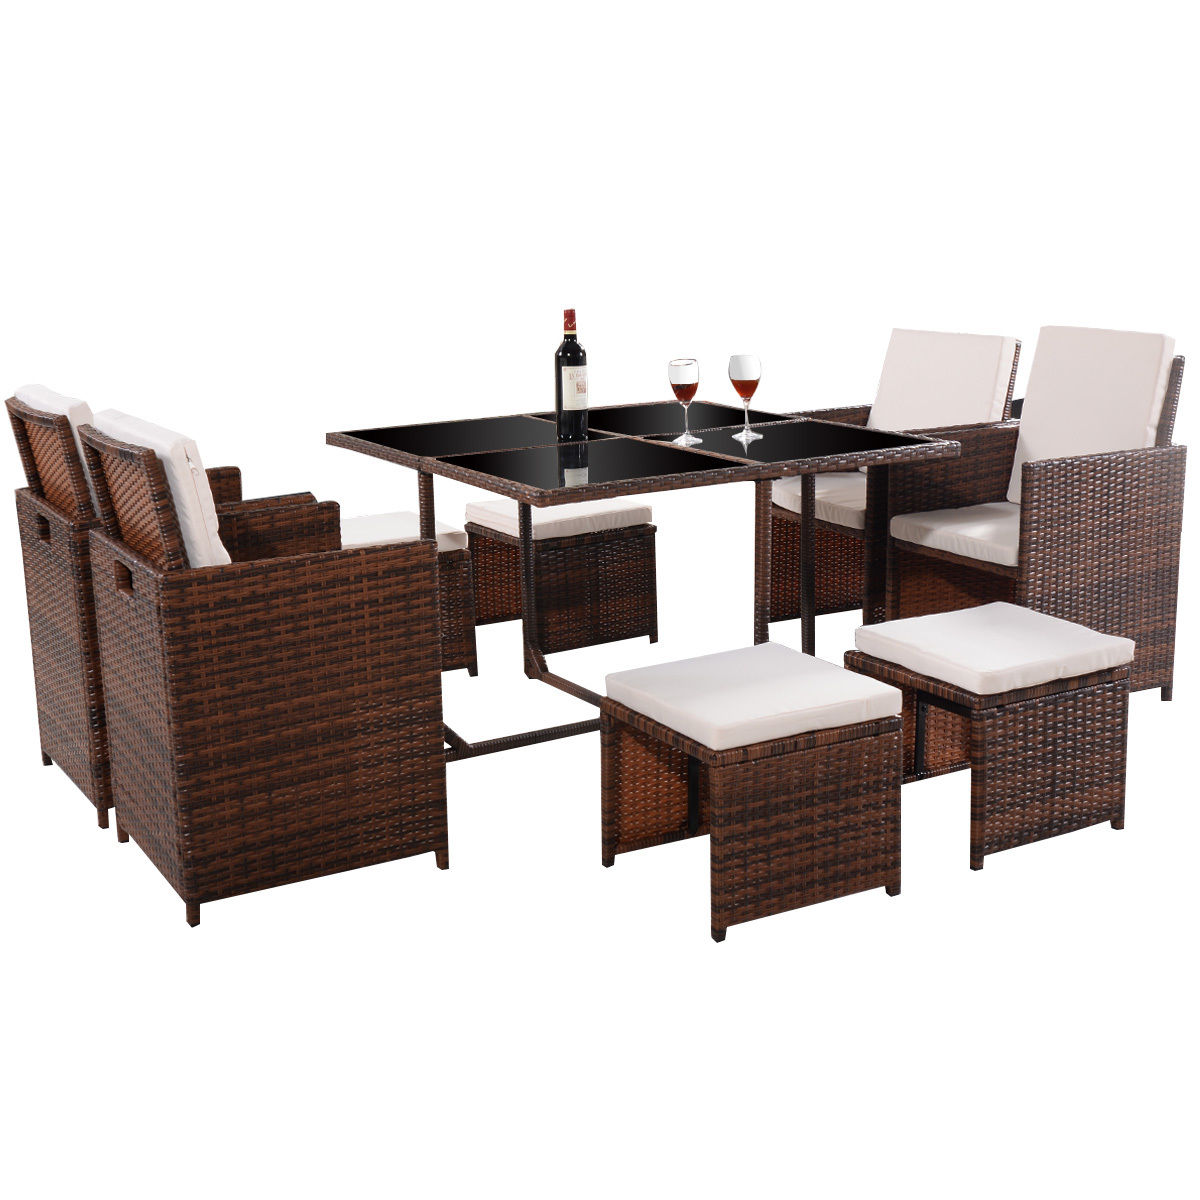 GHP 9-Pcs Brown PE Rattan Beige Cushion Single Chair Ottoman & Dining Table Furniture